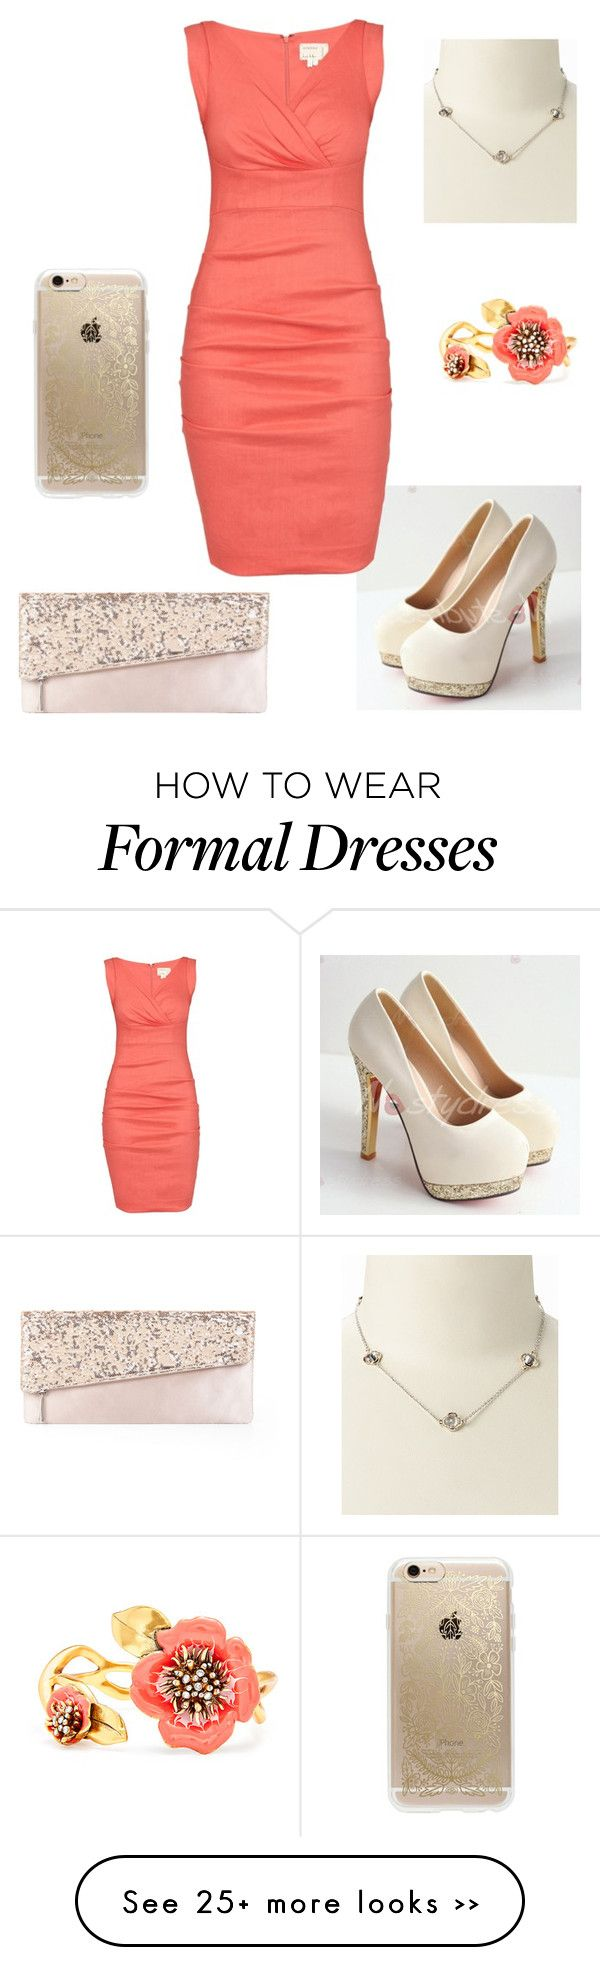 """""""Coral & Gold Formal Outfit"""" by romnell on Polyvore featuring Nicole Miller, BCBGMAXAZRIA, Rifle Paper Co and Oscar de la Renta"""